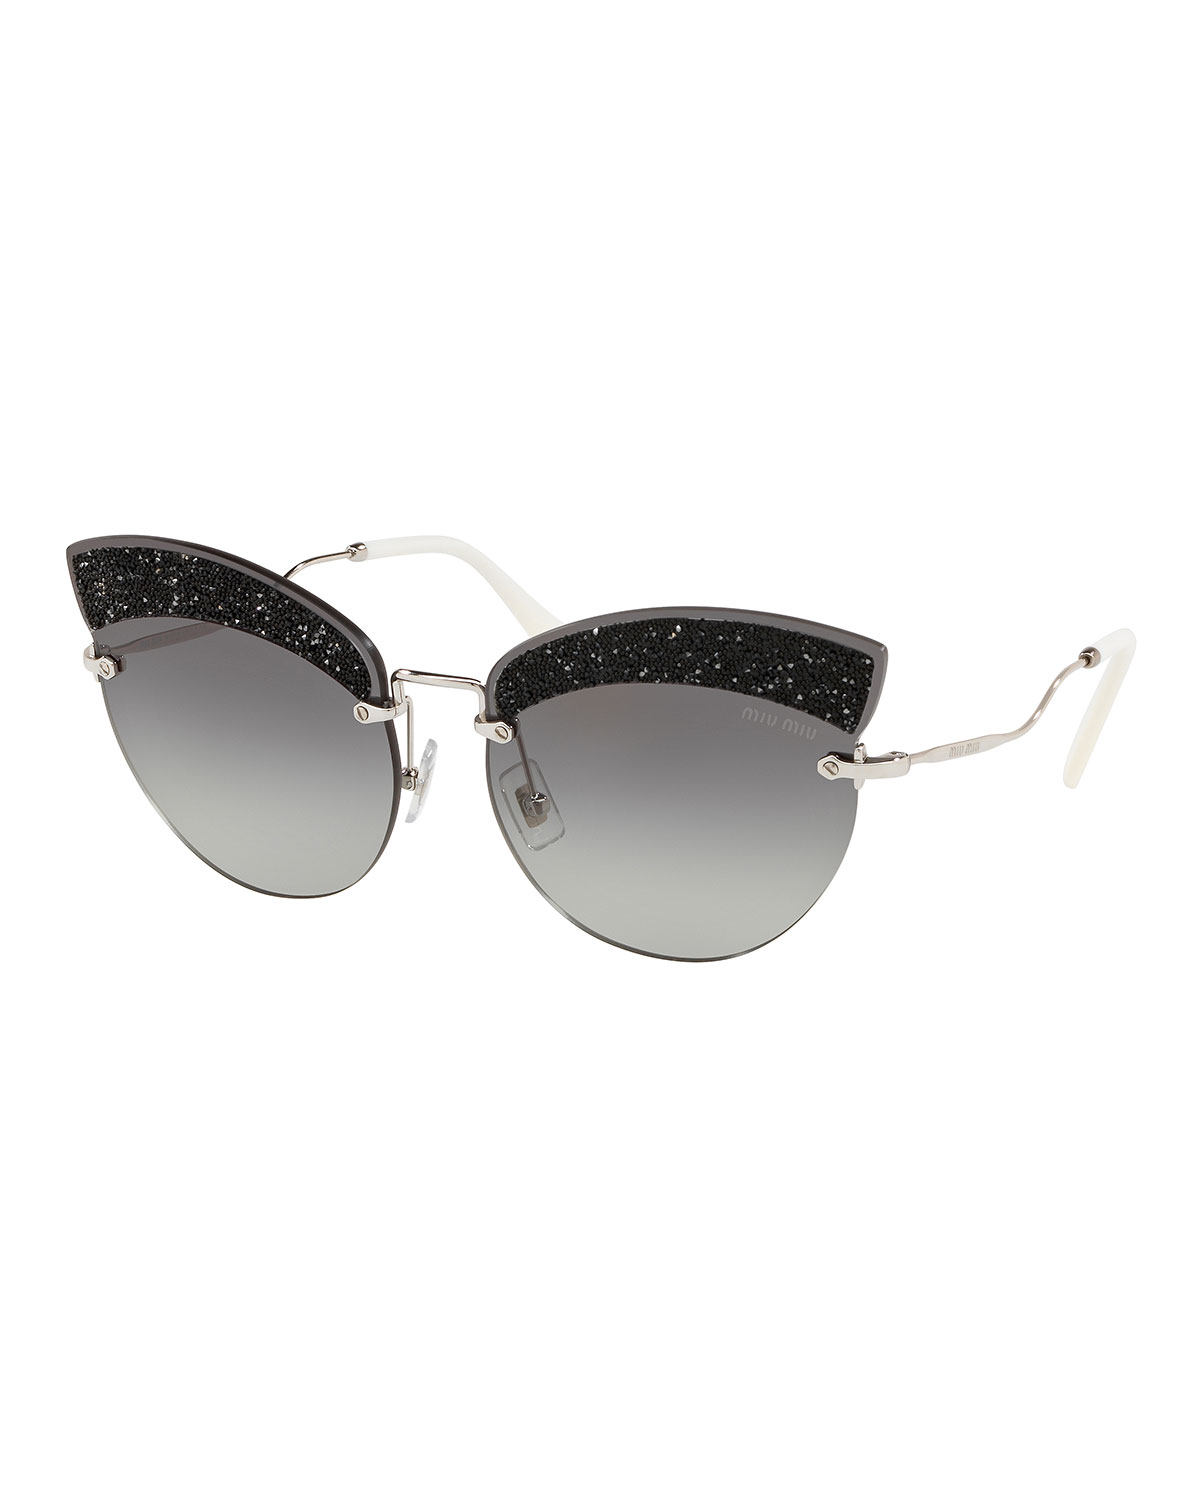 8dc09192fada Buy miu miu sunglasses & eyewear for women - Best women's miu miu sunglasses  & eyewear shop - Cools.com